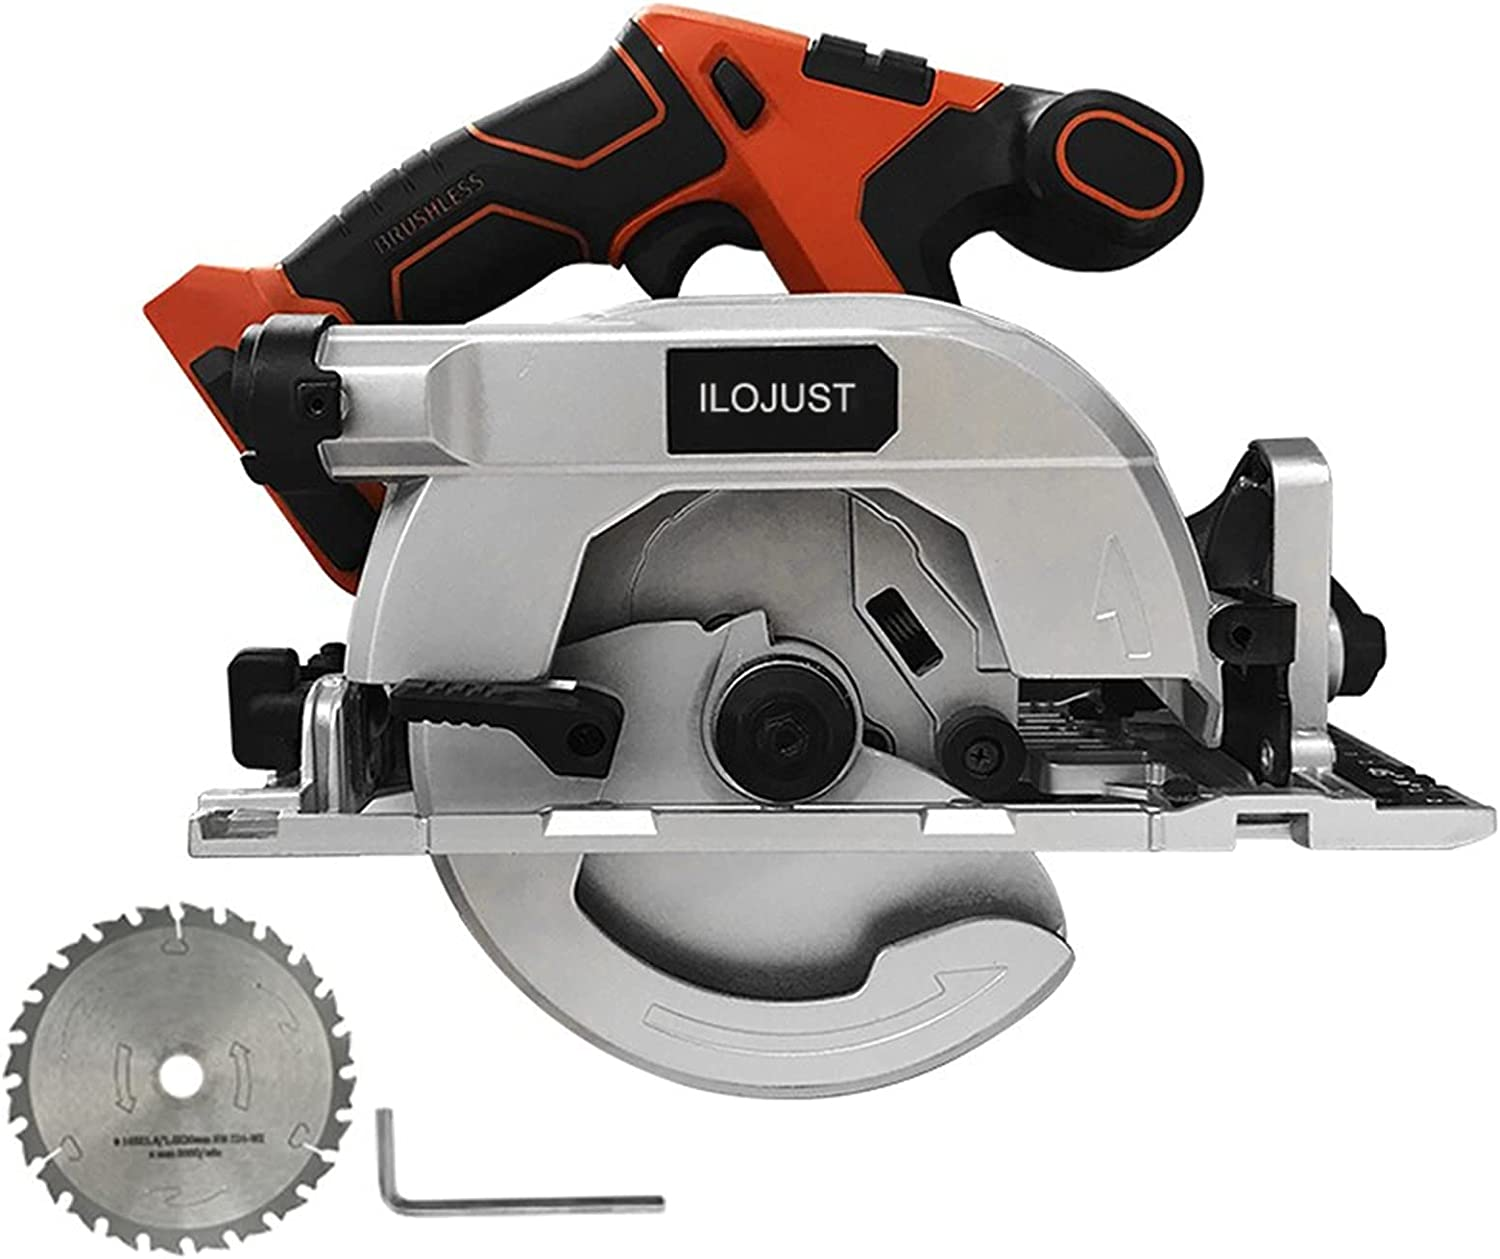 ILOJUST Power Tools Namely Circular Me Max 78% OFF OFFicial shop with Saw Saws